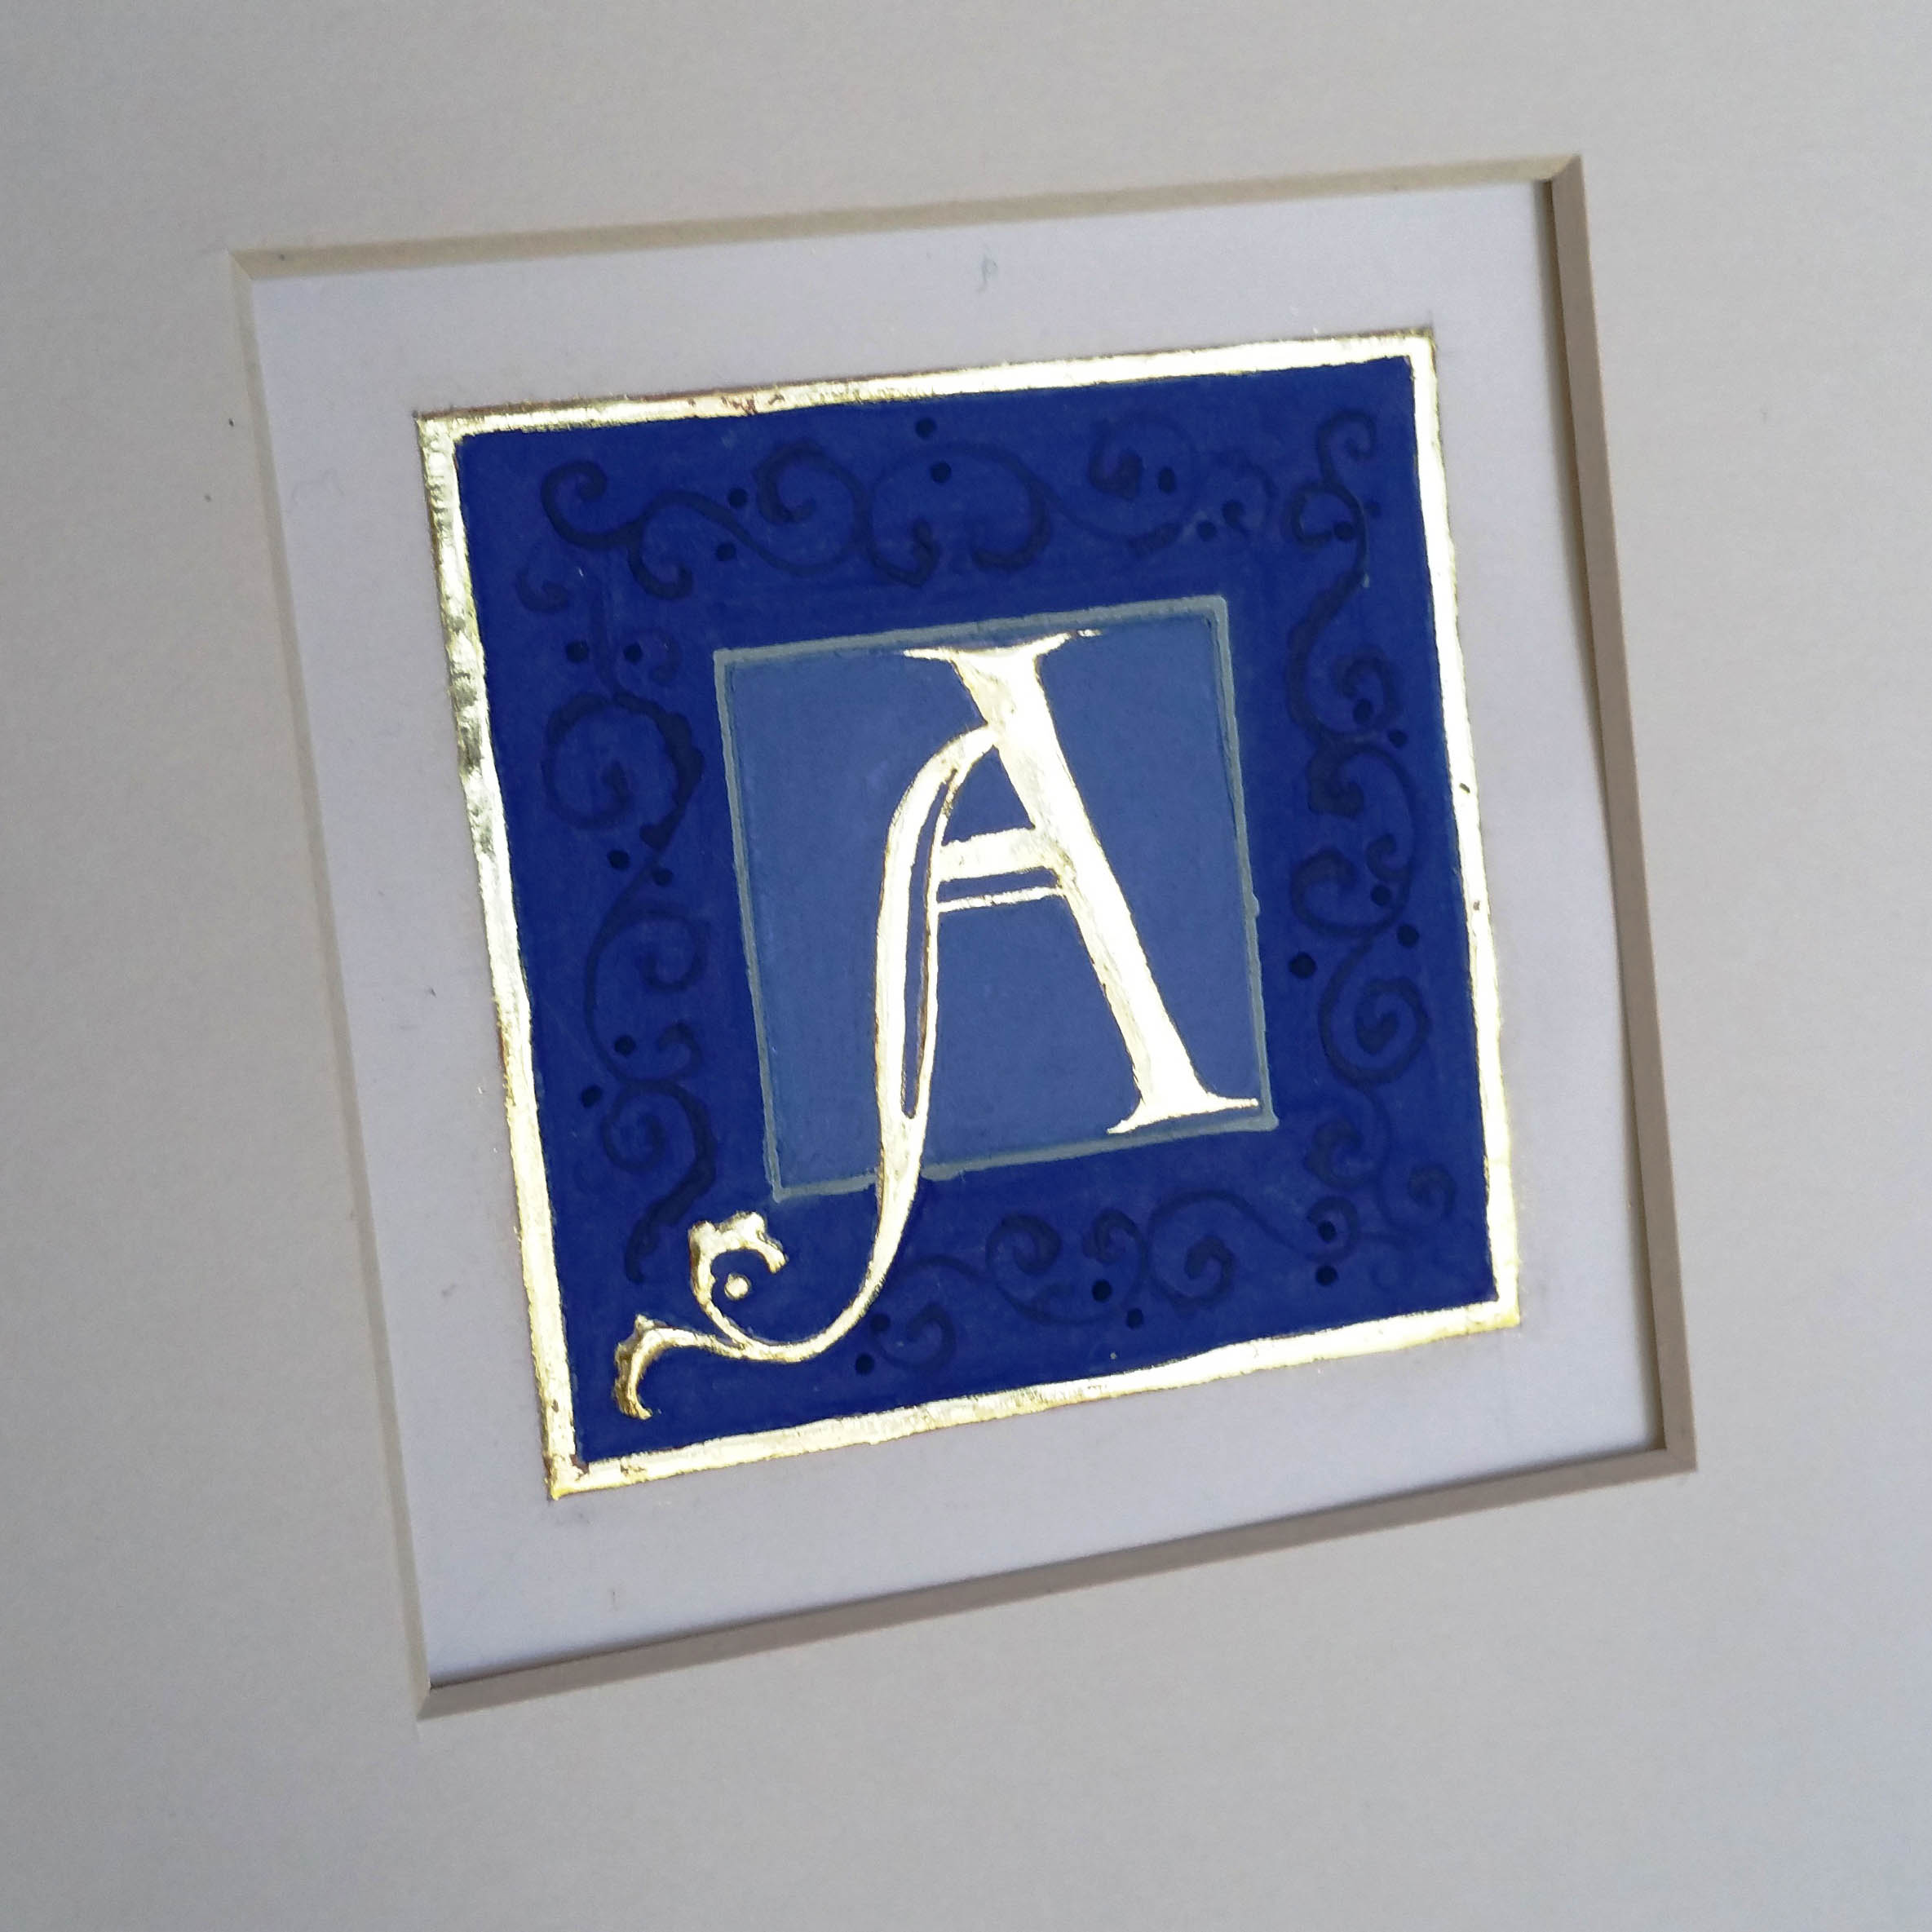 letter A gilded in 23 ct gold leaf